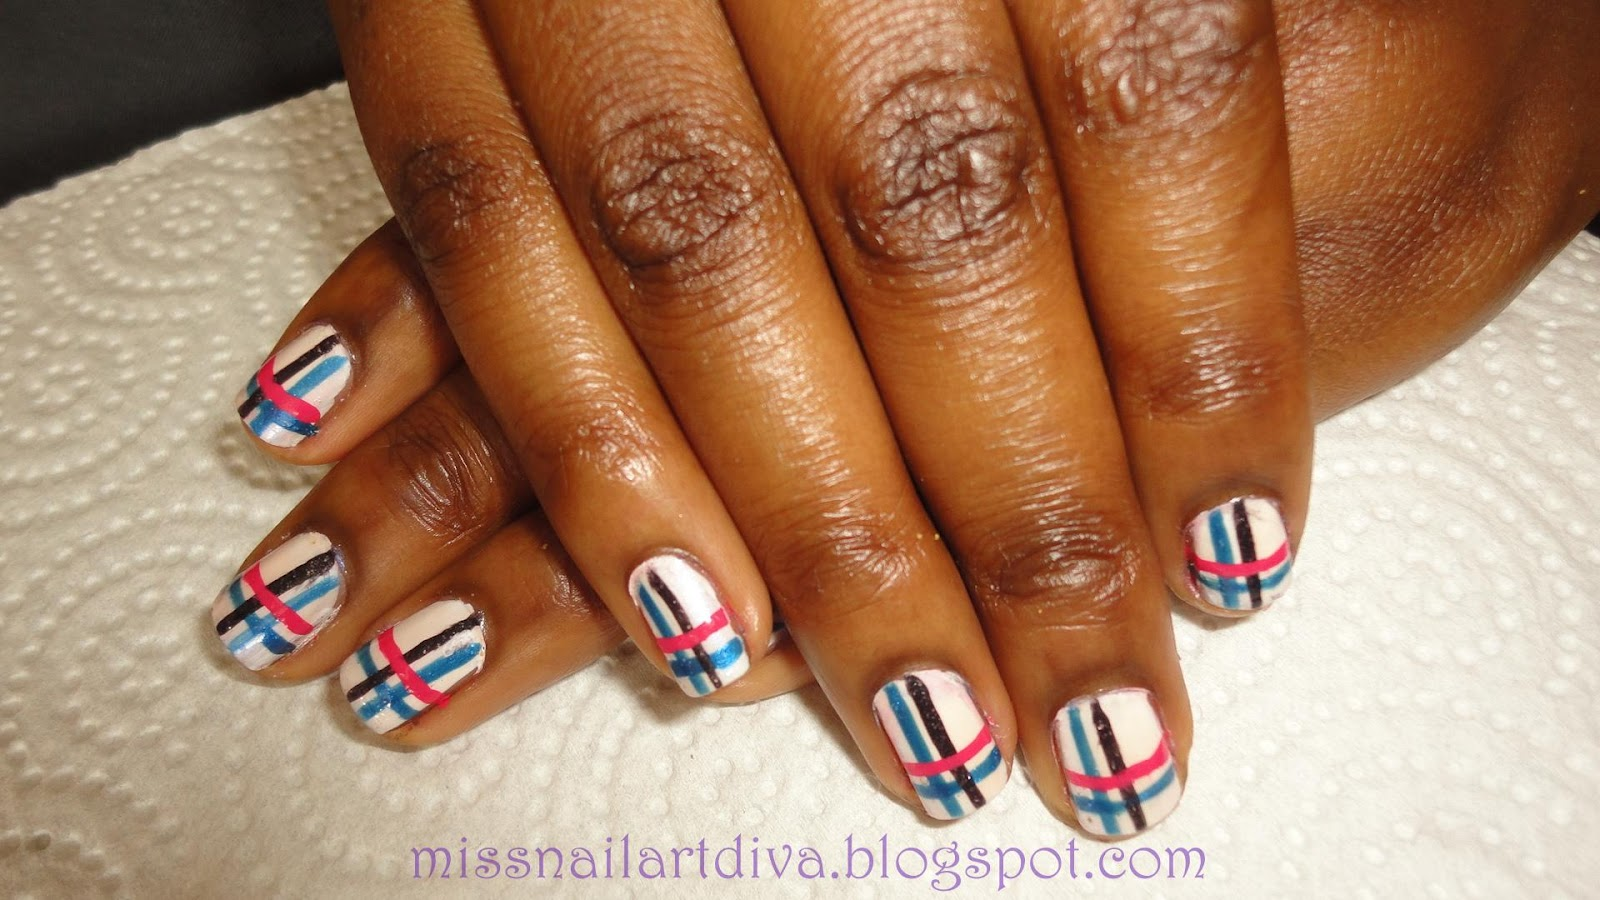 Drawing Lines On Nails : Nail art designs with lines joy studio design gallery